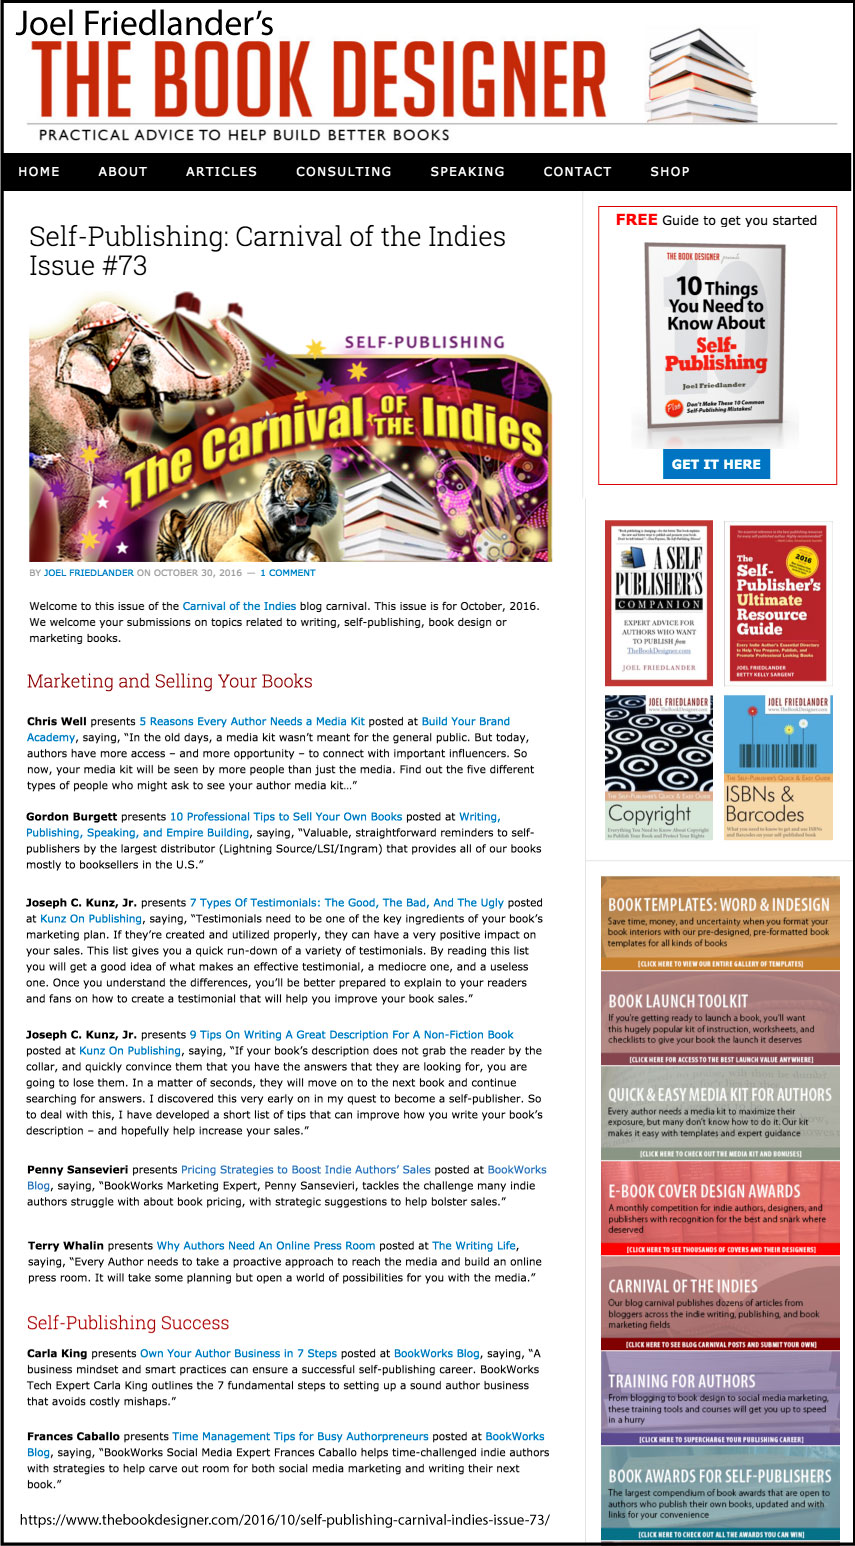 Thank you to Joel Friedlander of TheBookDesigner.com for linking to this article from his blog Carnival Of The Indies #73